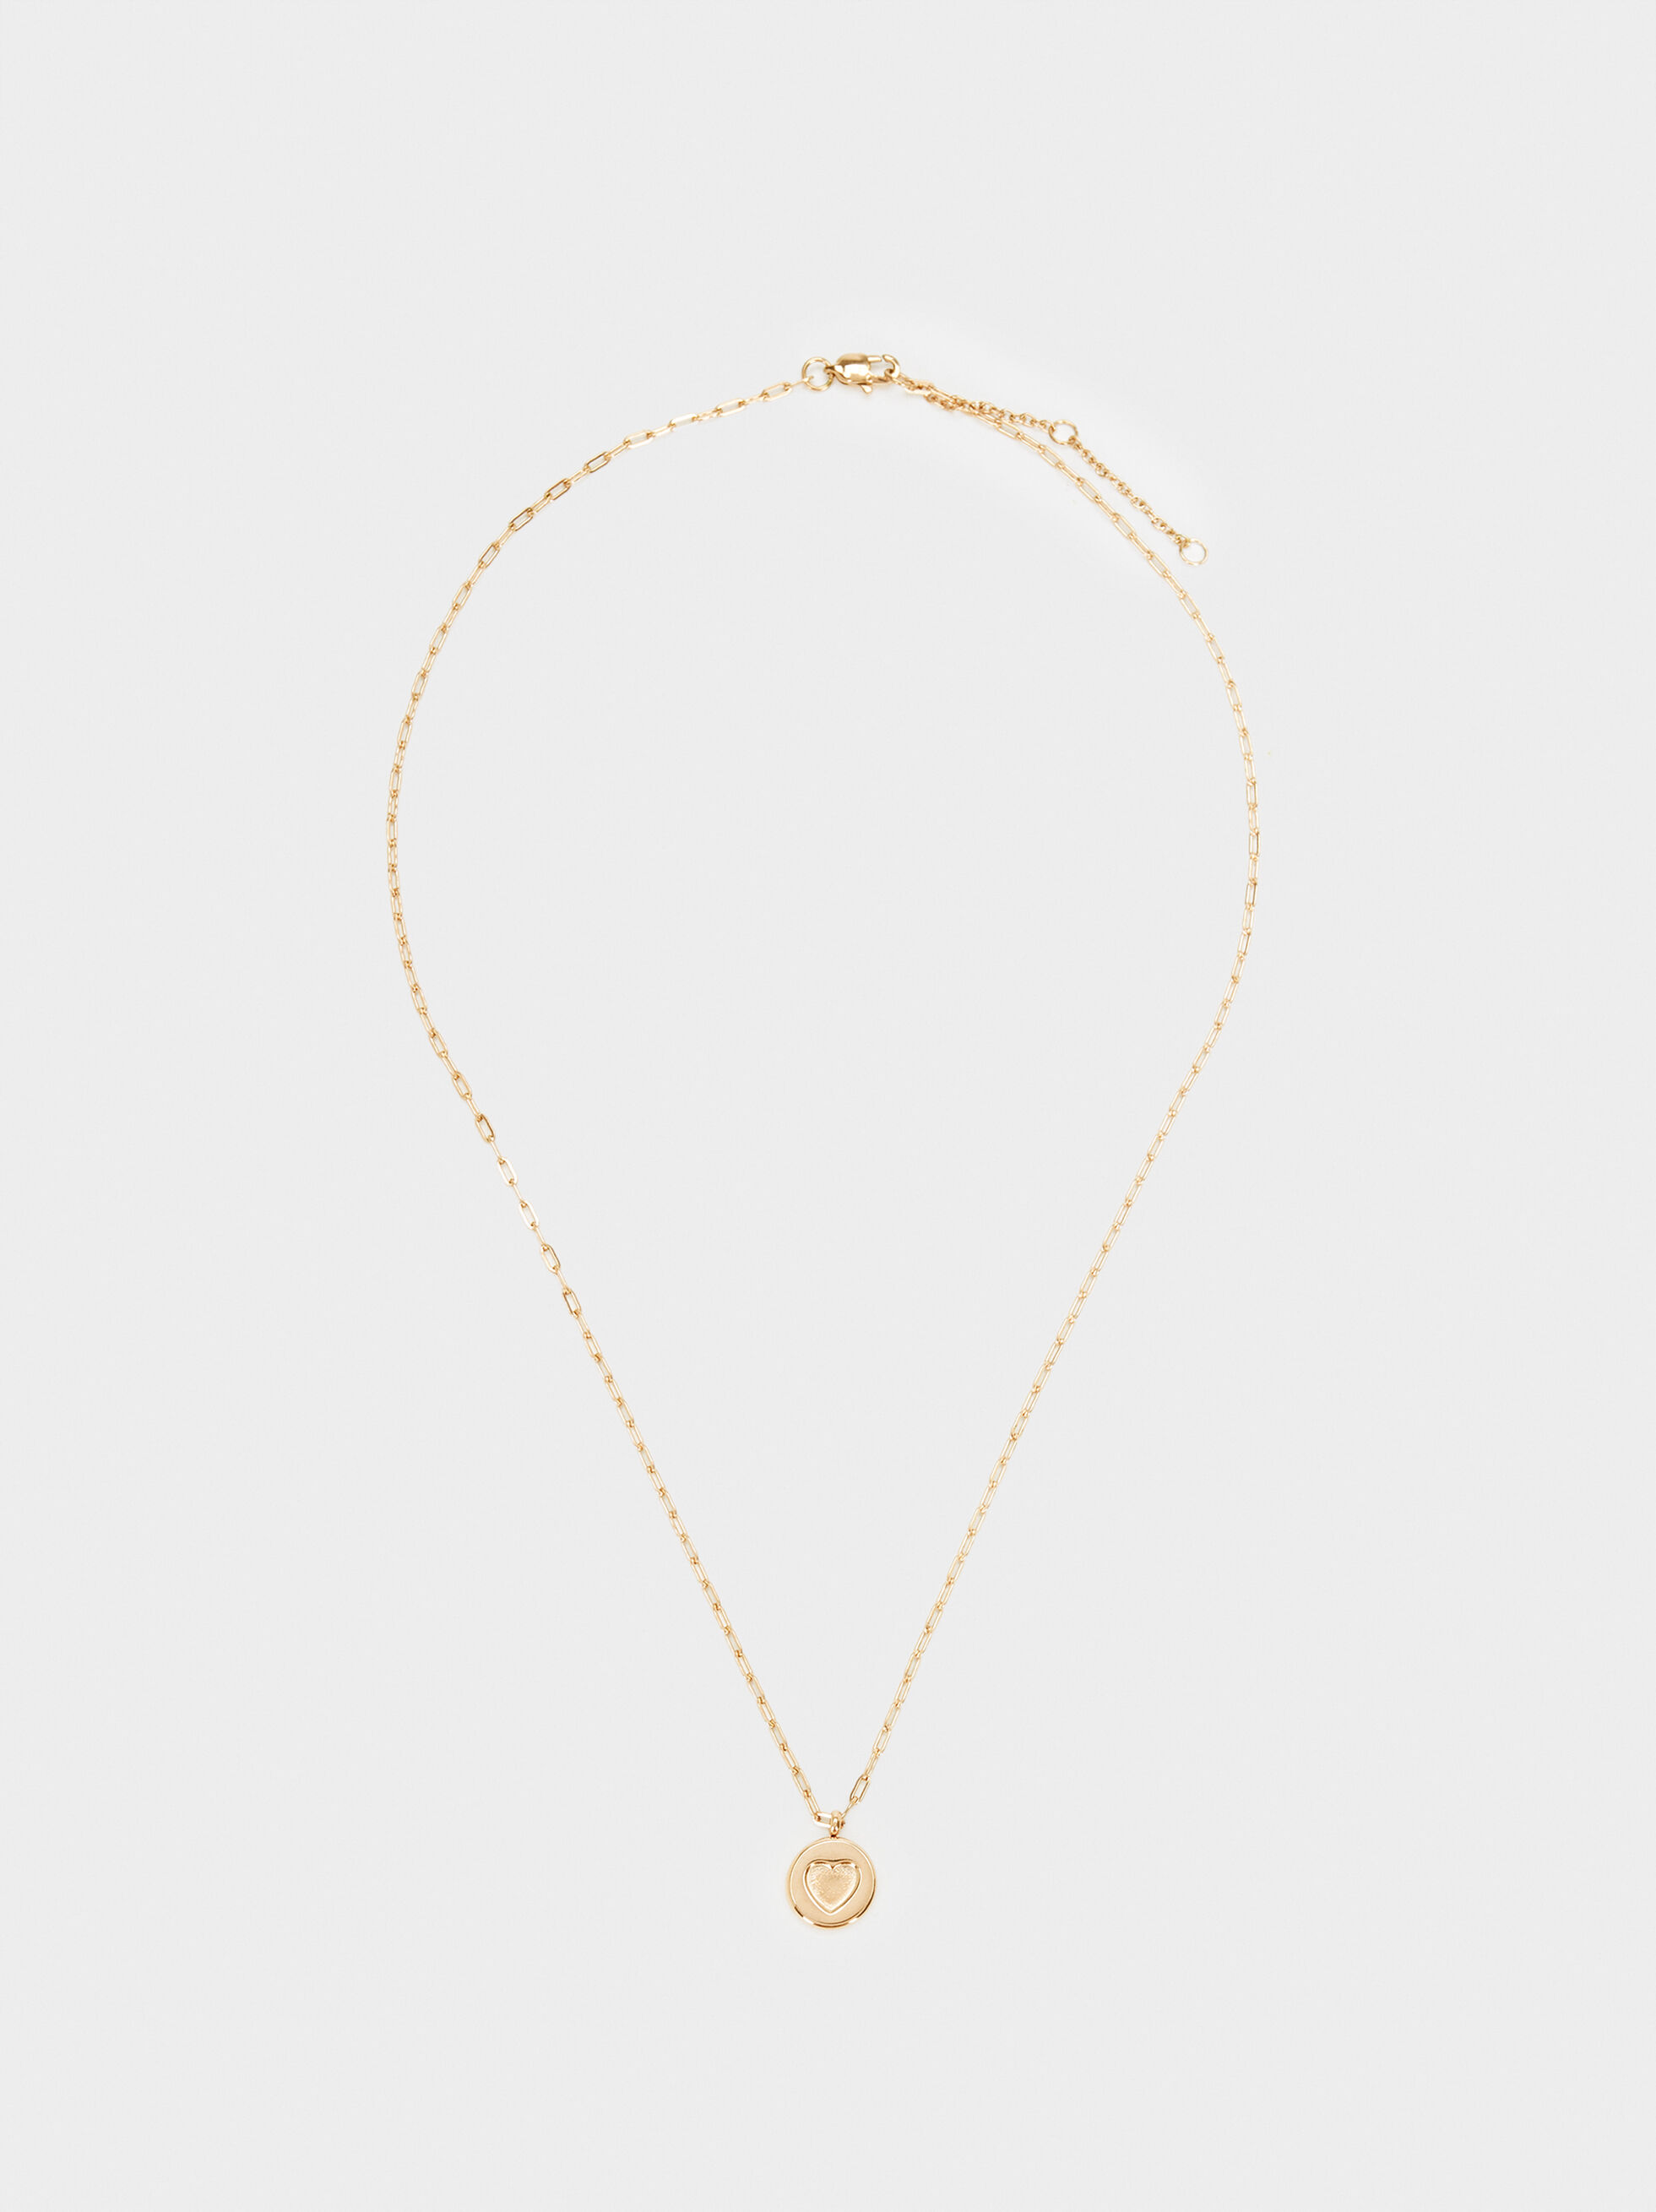 Stainless Steel Gold Short Necklace With Heart Charm, , hi-res